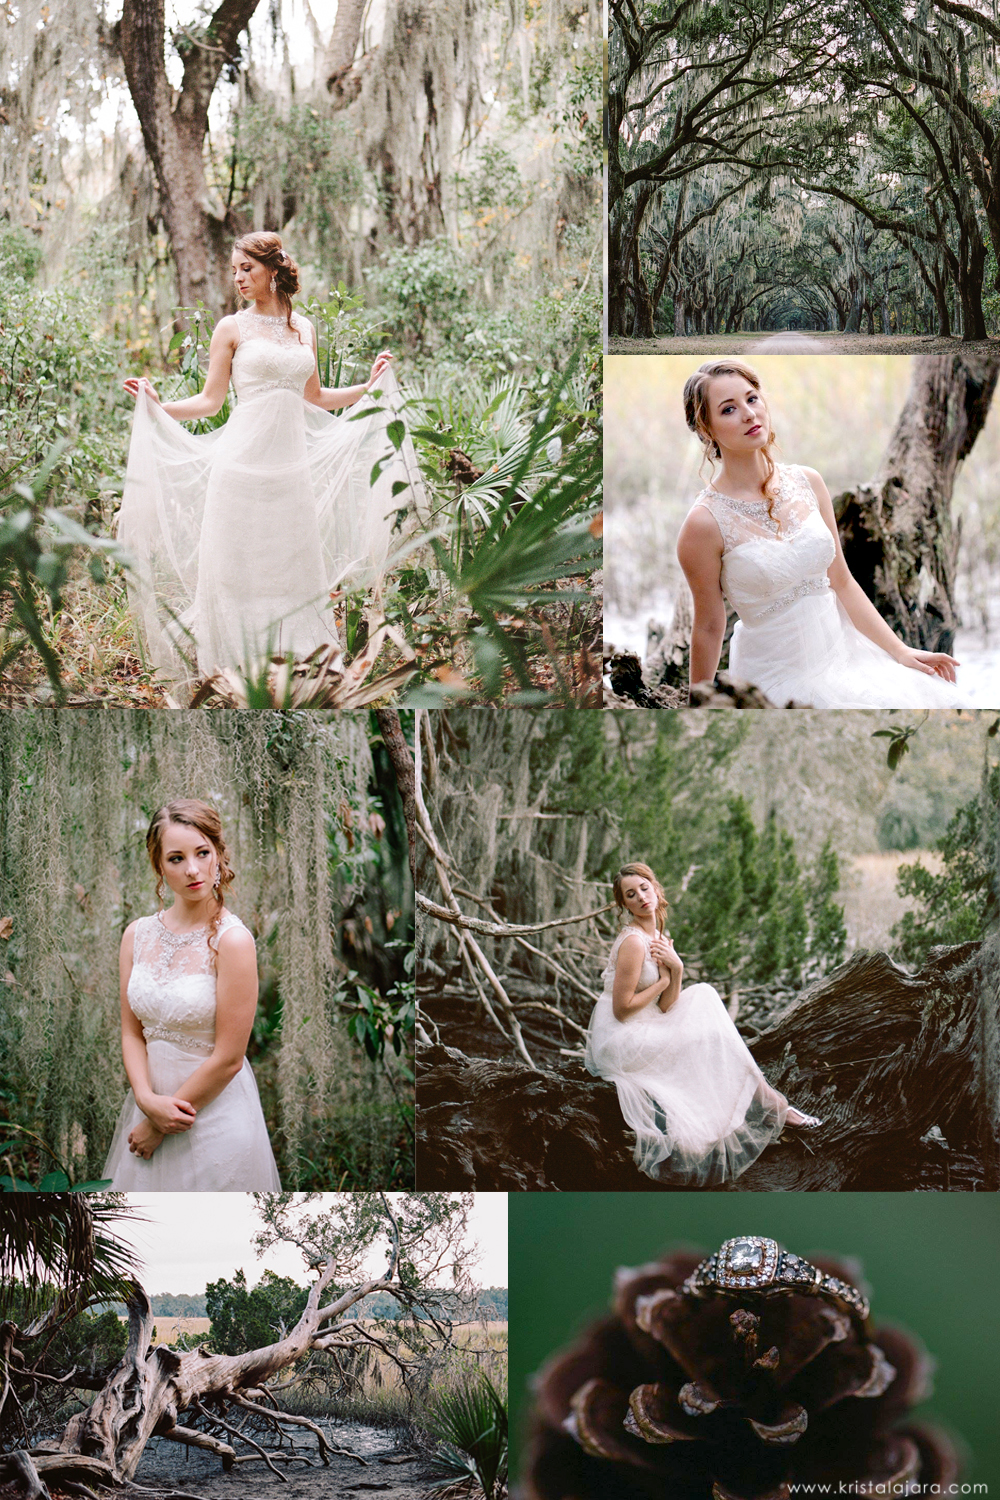 Krista Lajara Photography | www.kristalajara.com | Bridal Session at Wormsloe Historic Site in Savannah, GA